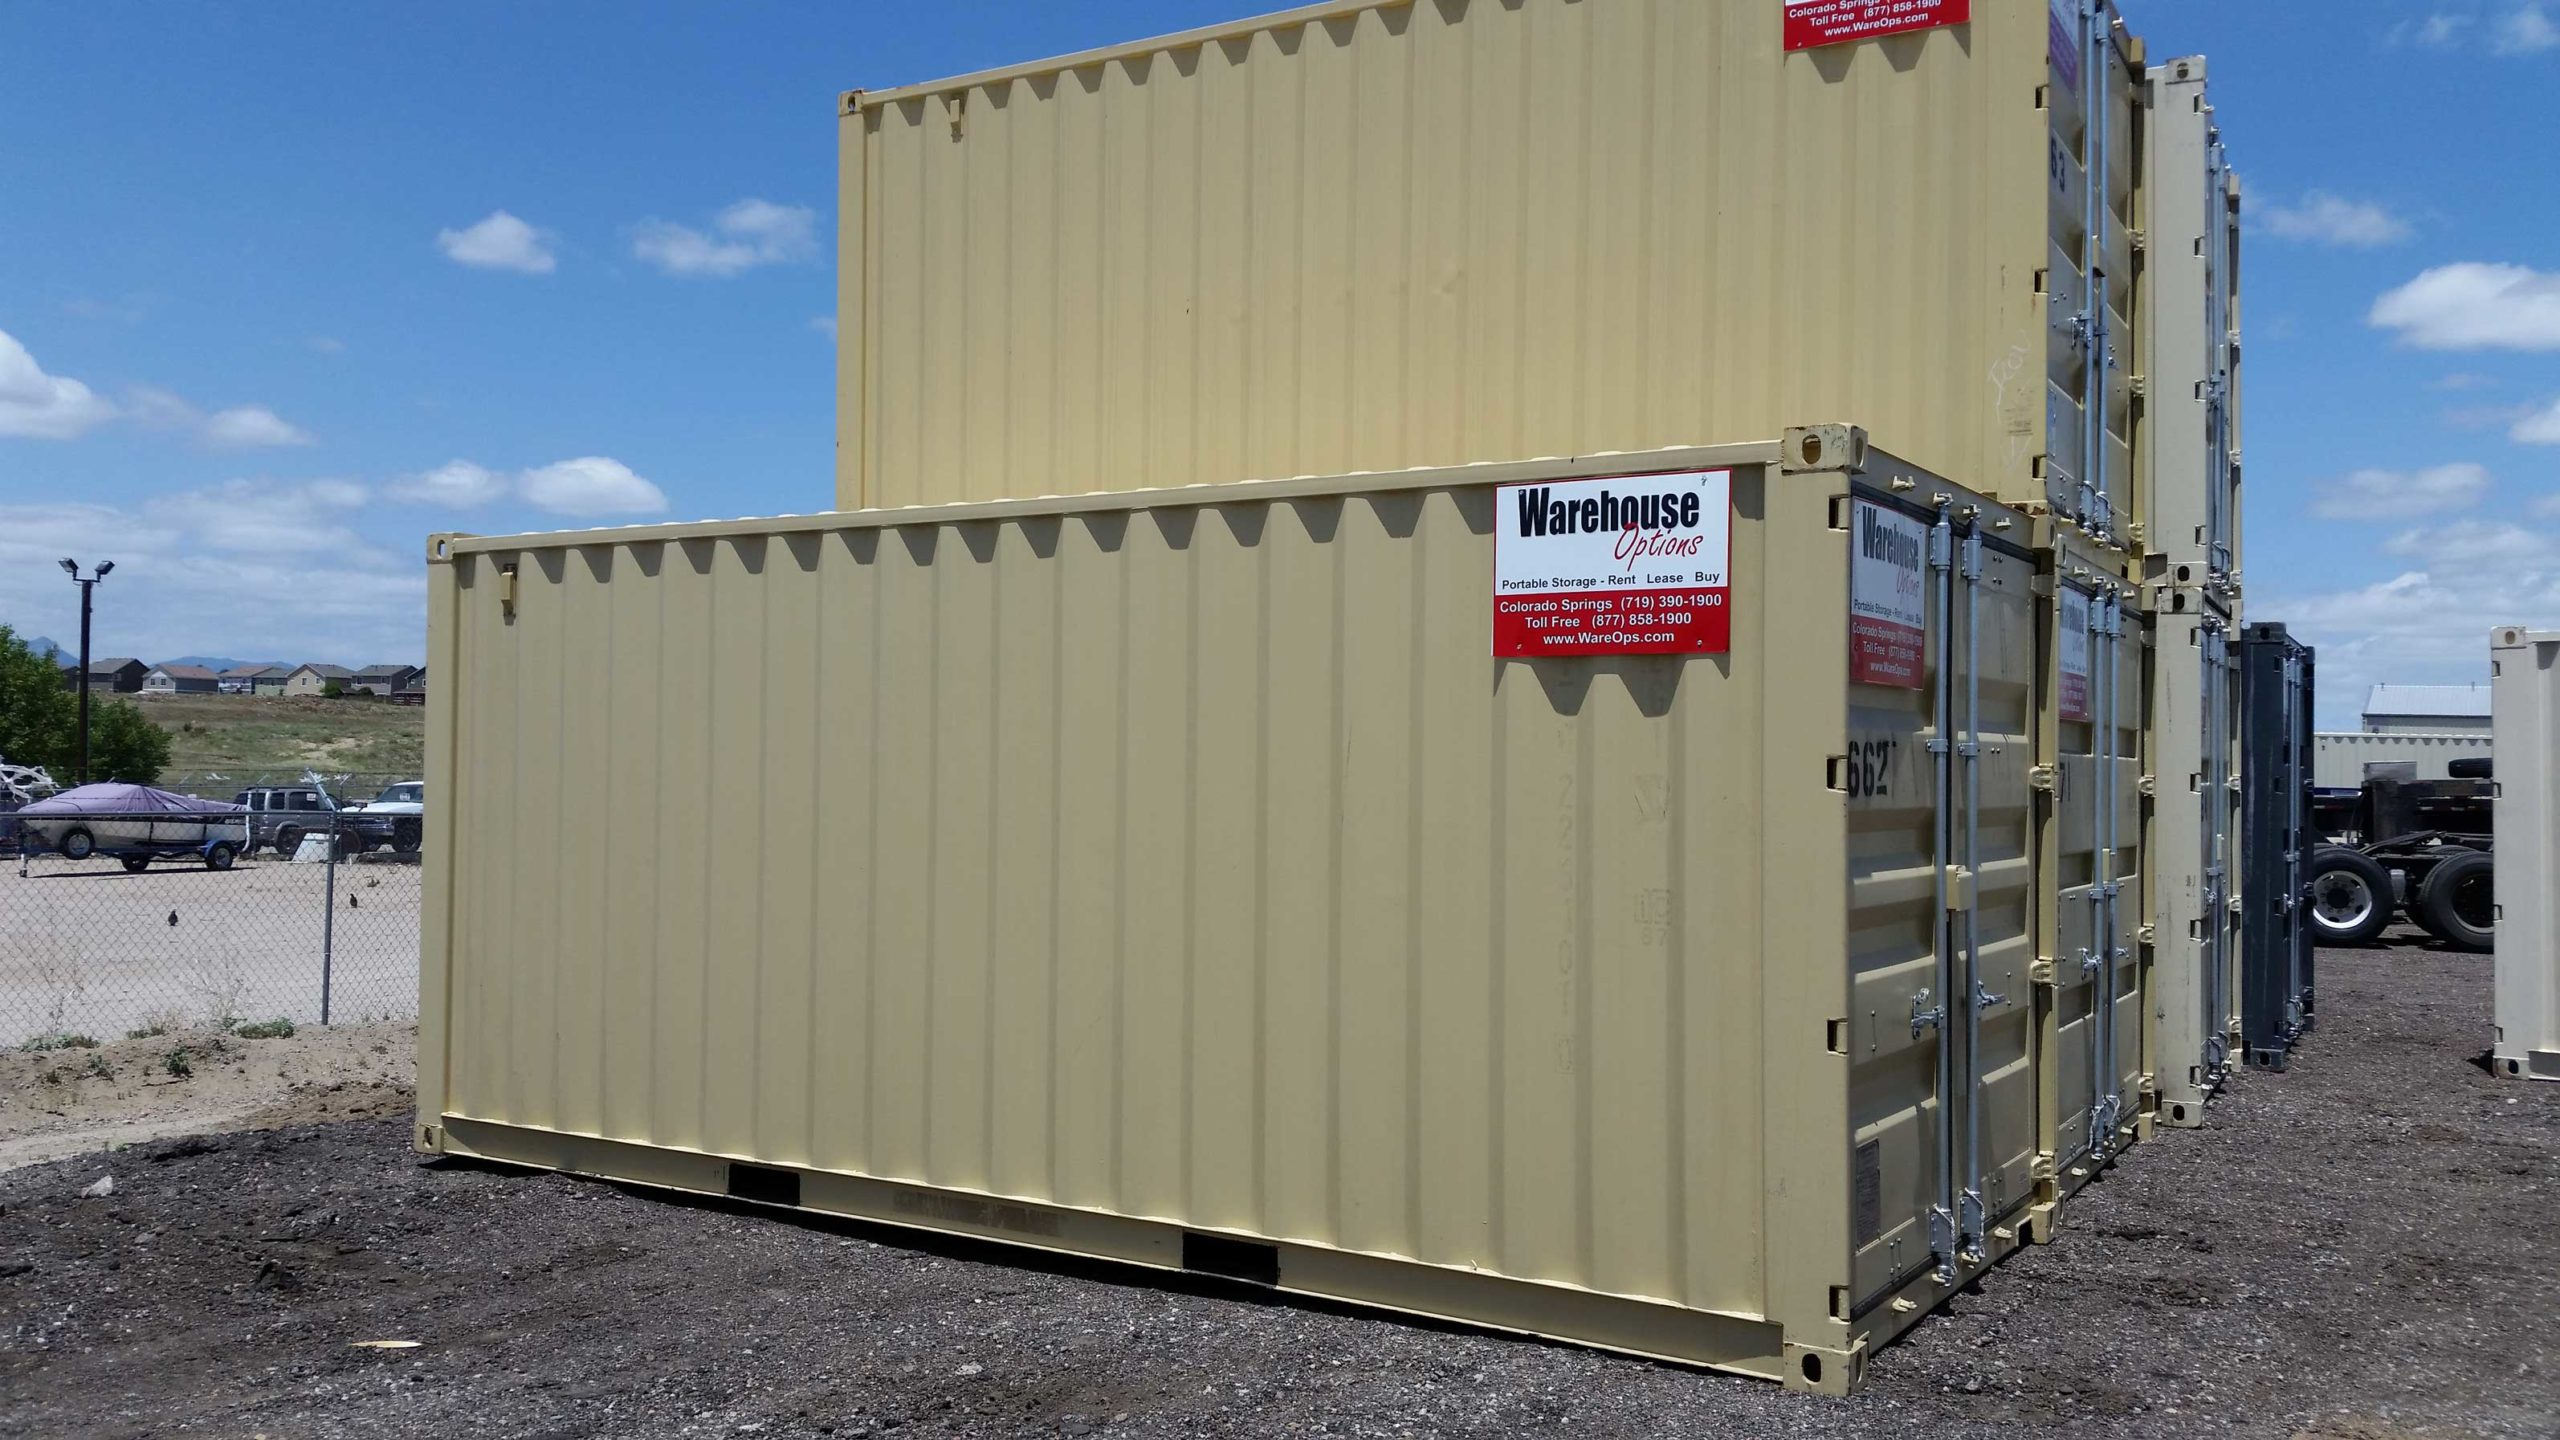 Best Kitchen Gallery: 20 Foot One Trip Storage Containers 4 800 Warehouse Options of 20 Foot Shipping Container Cost on rachelxblog.com